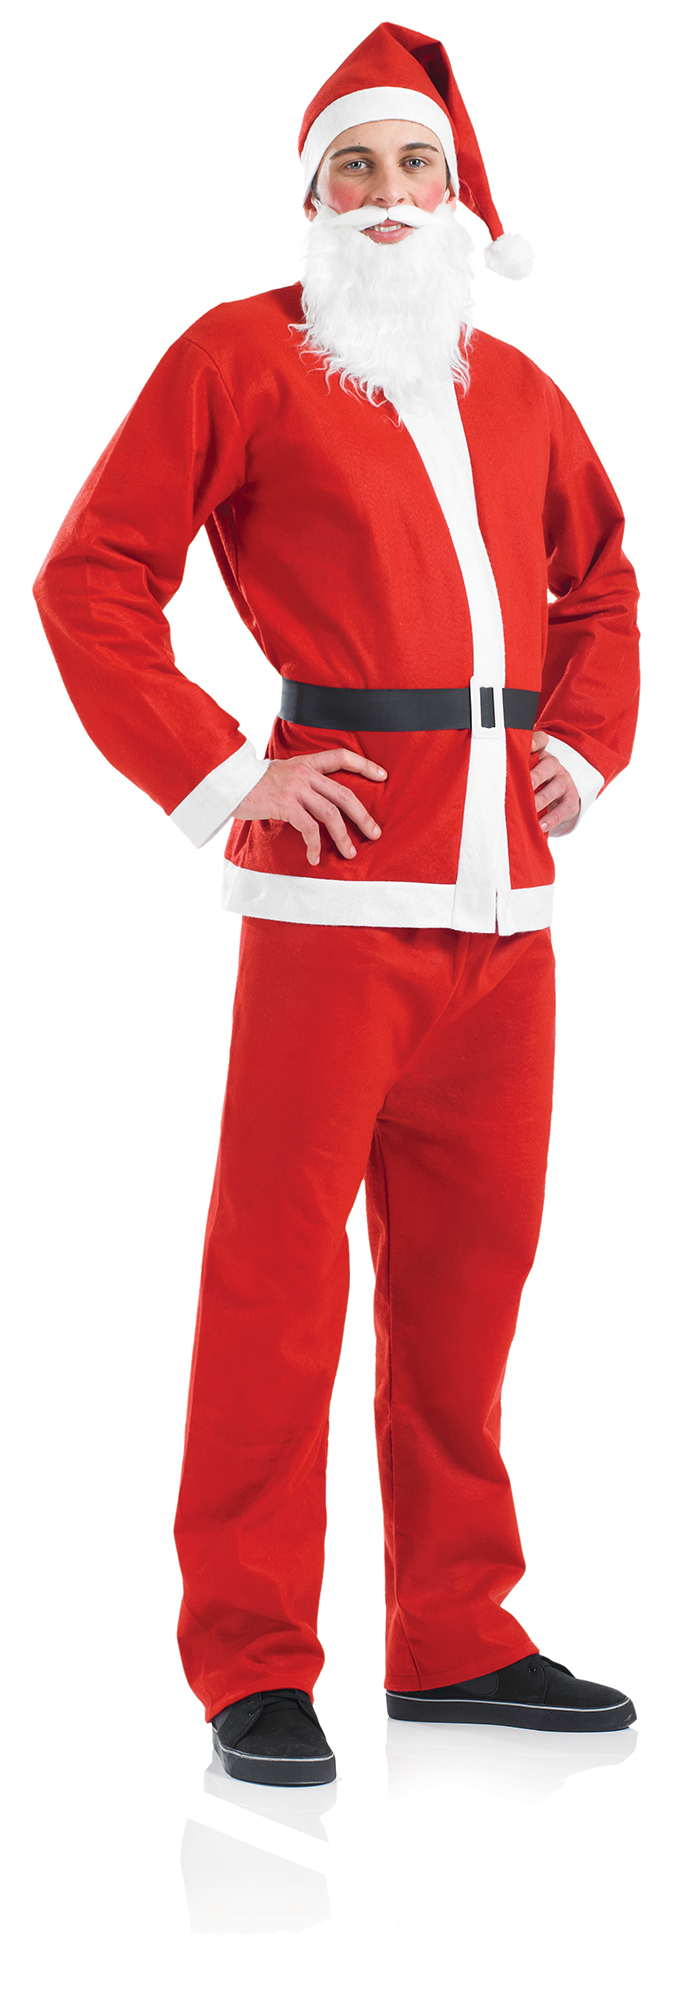 Santa claus suit costume mens christmas costumes mega